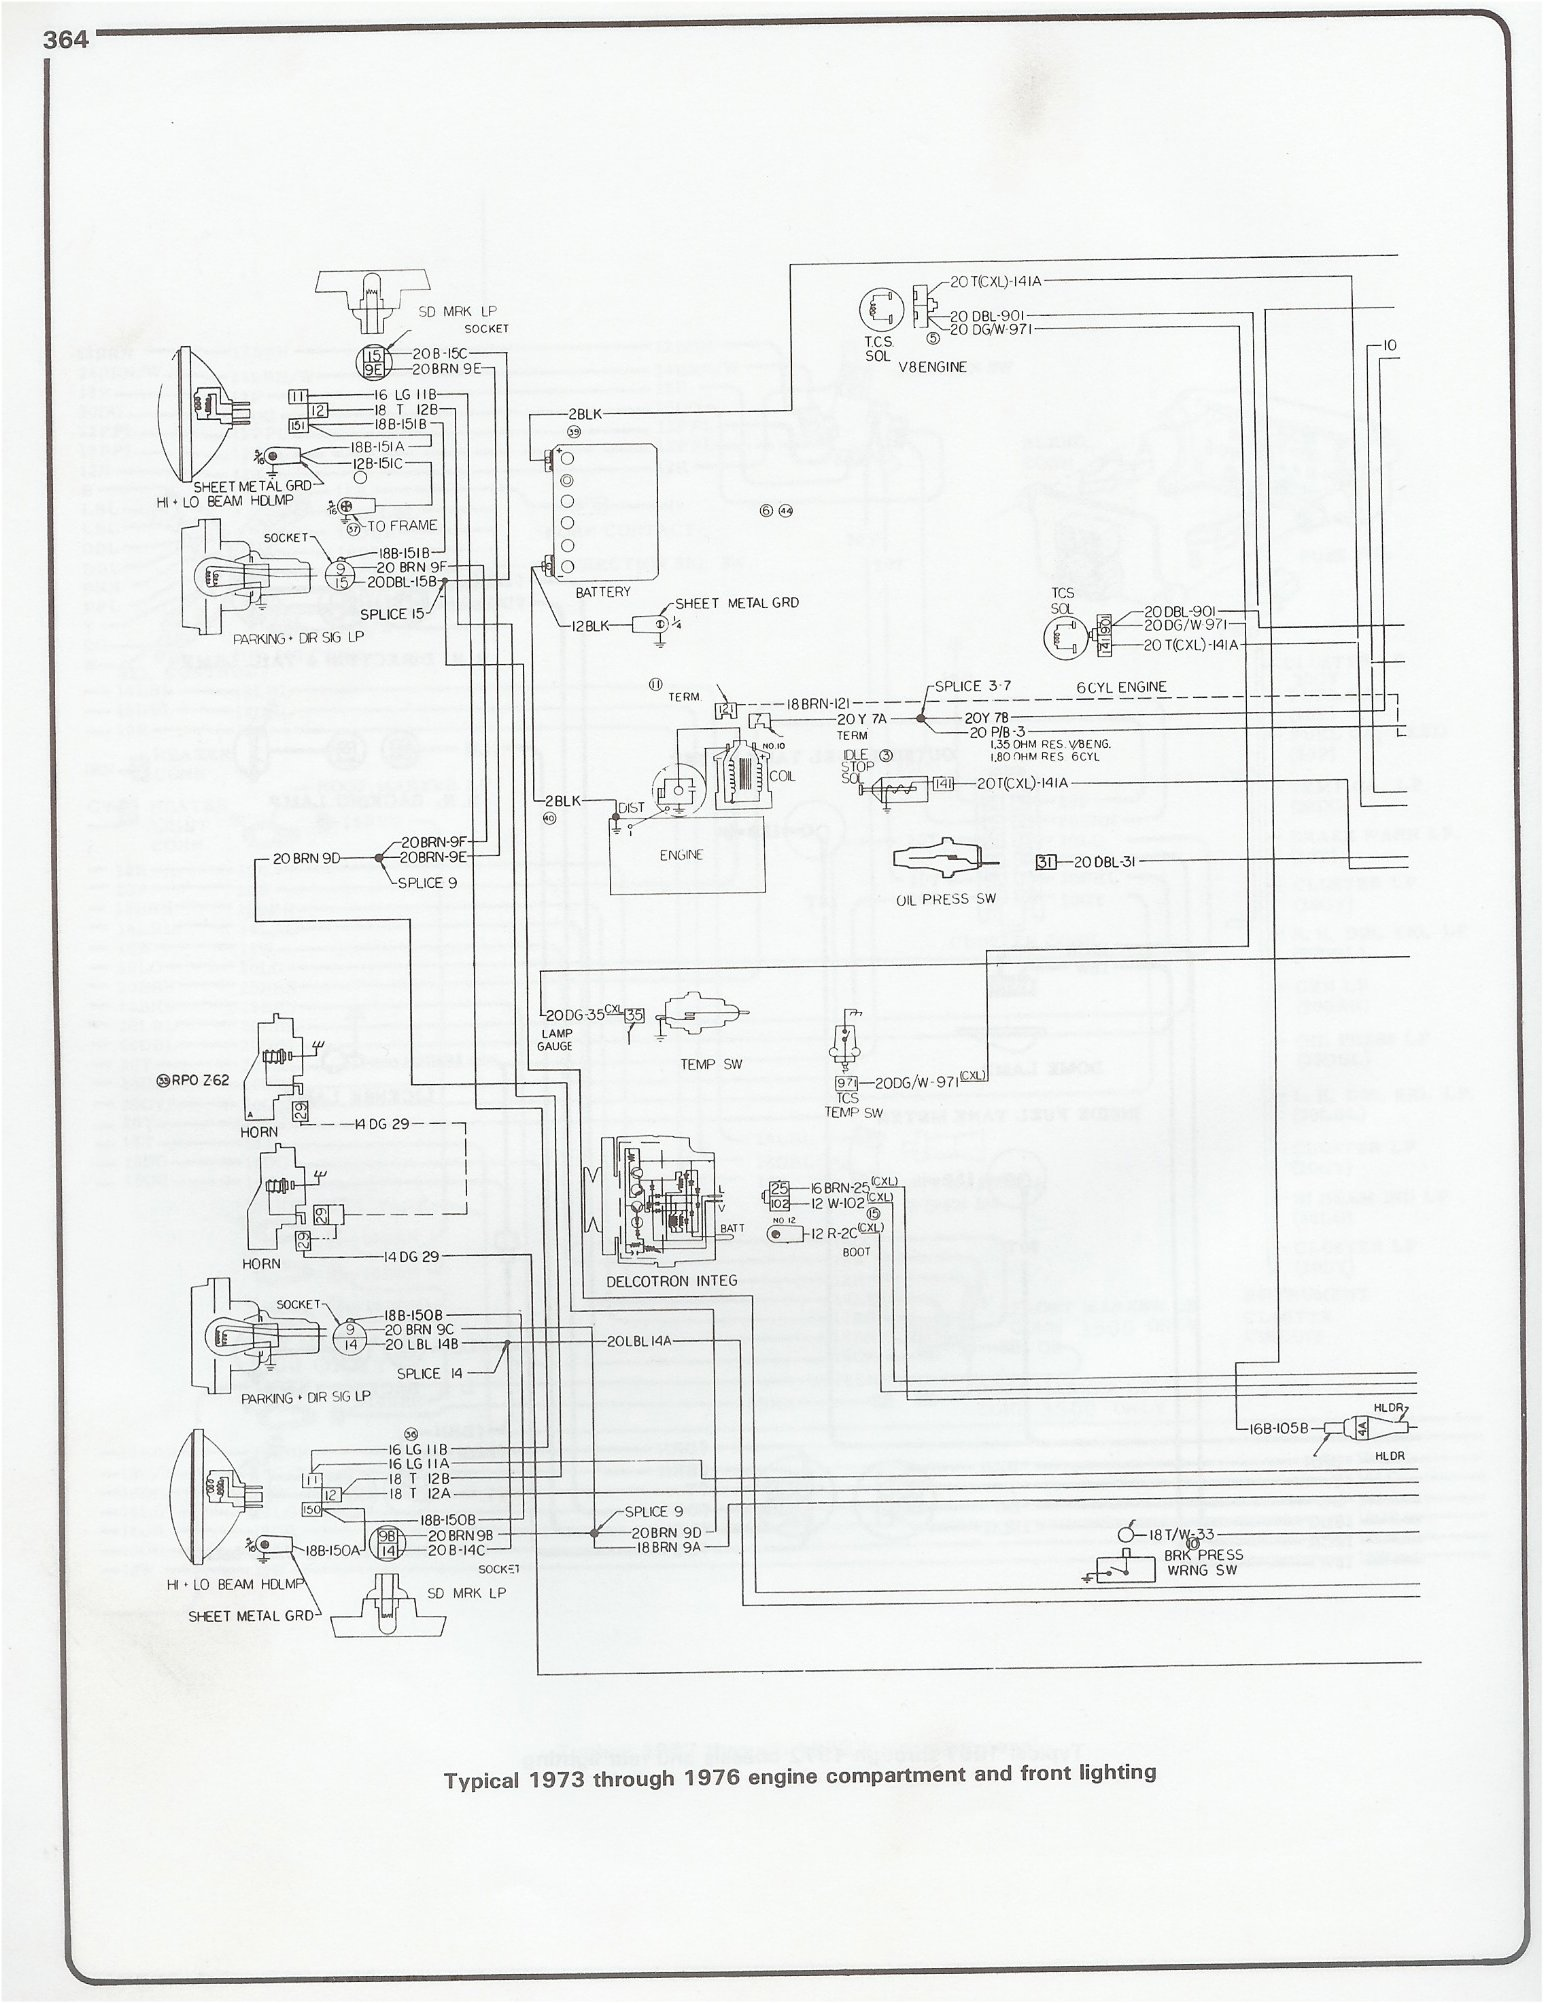 Complete 73 87 Wiring Diagrams Basic Ignition Diagram 76 Engine And Front Lighting